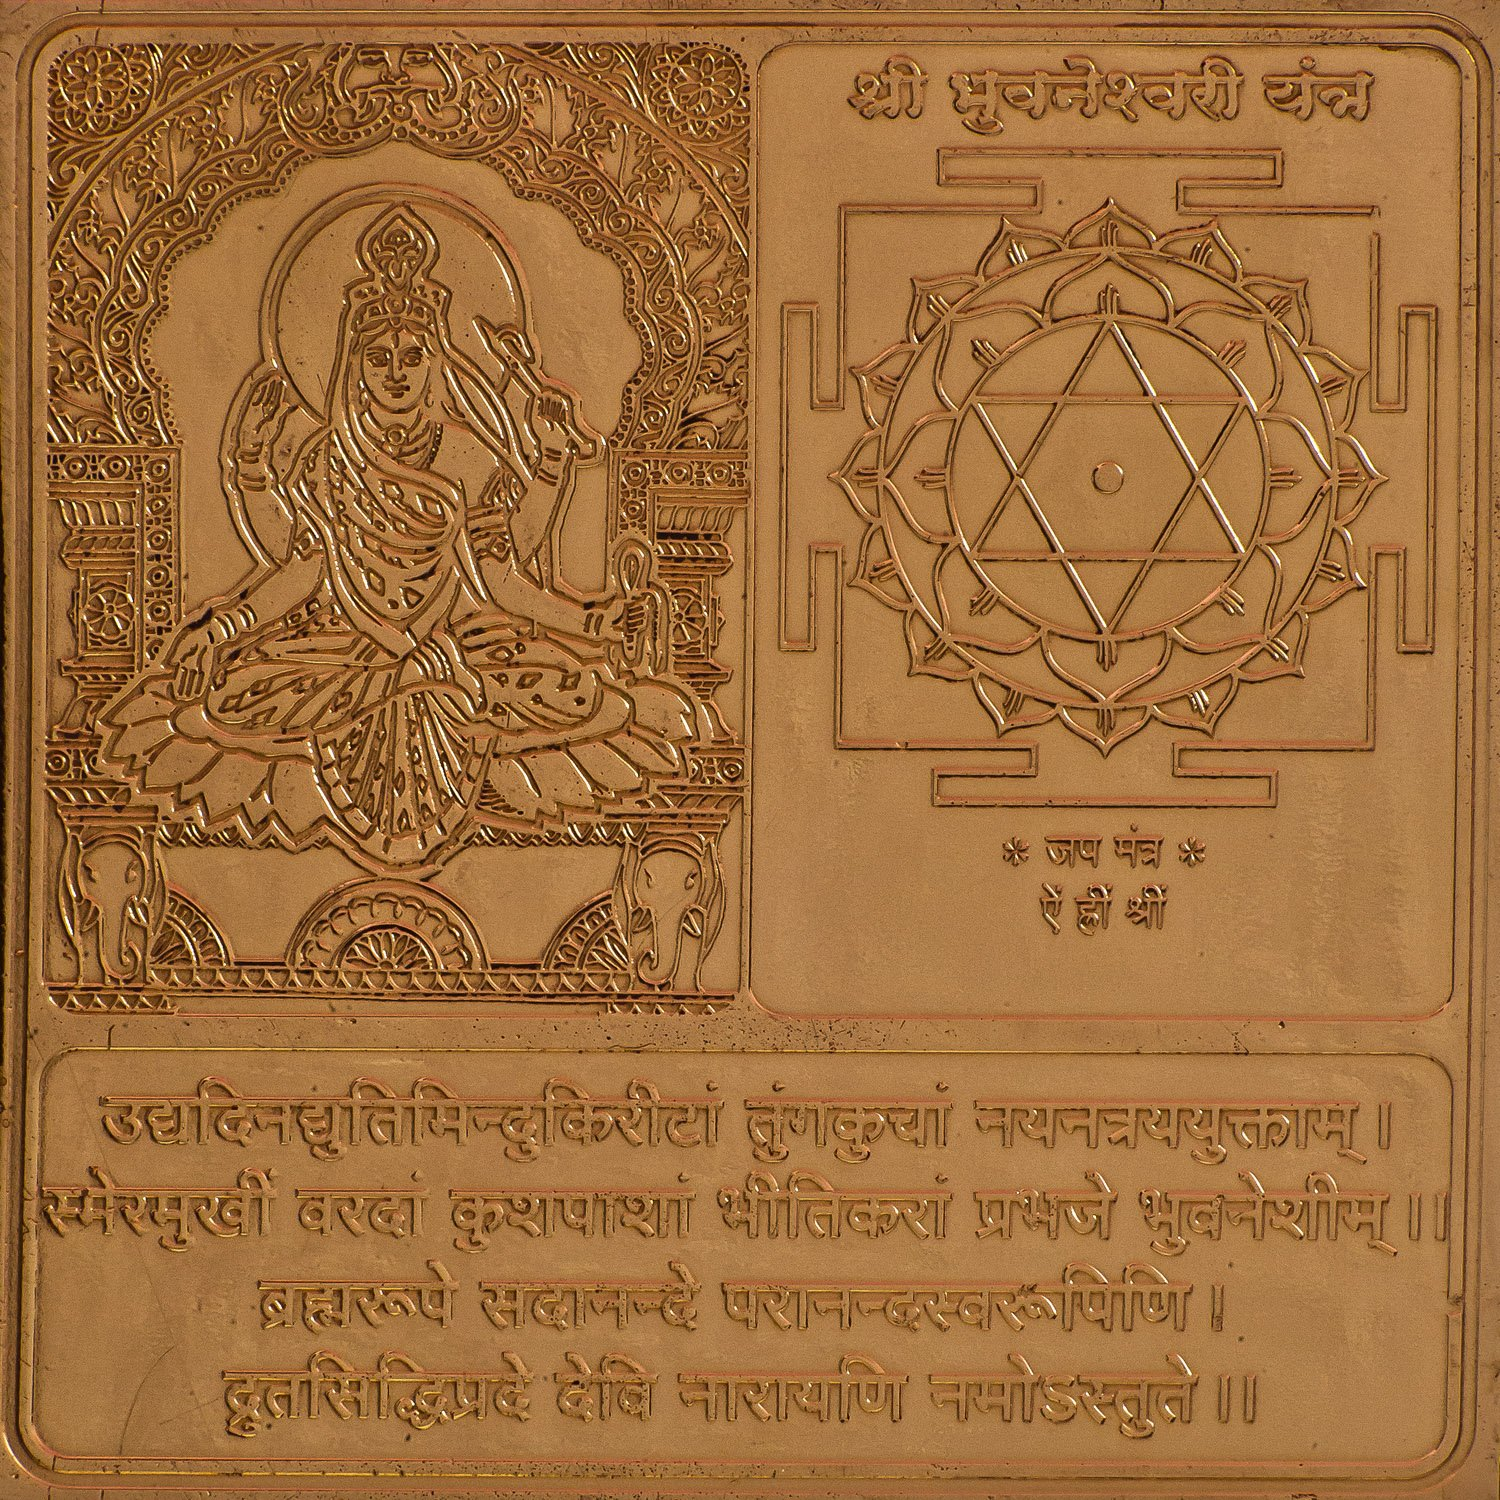 Shri Bhuvaneshvari Yantra (Ten Mahavidya Series) - Copper